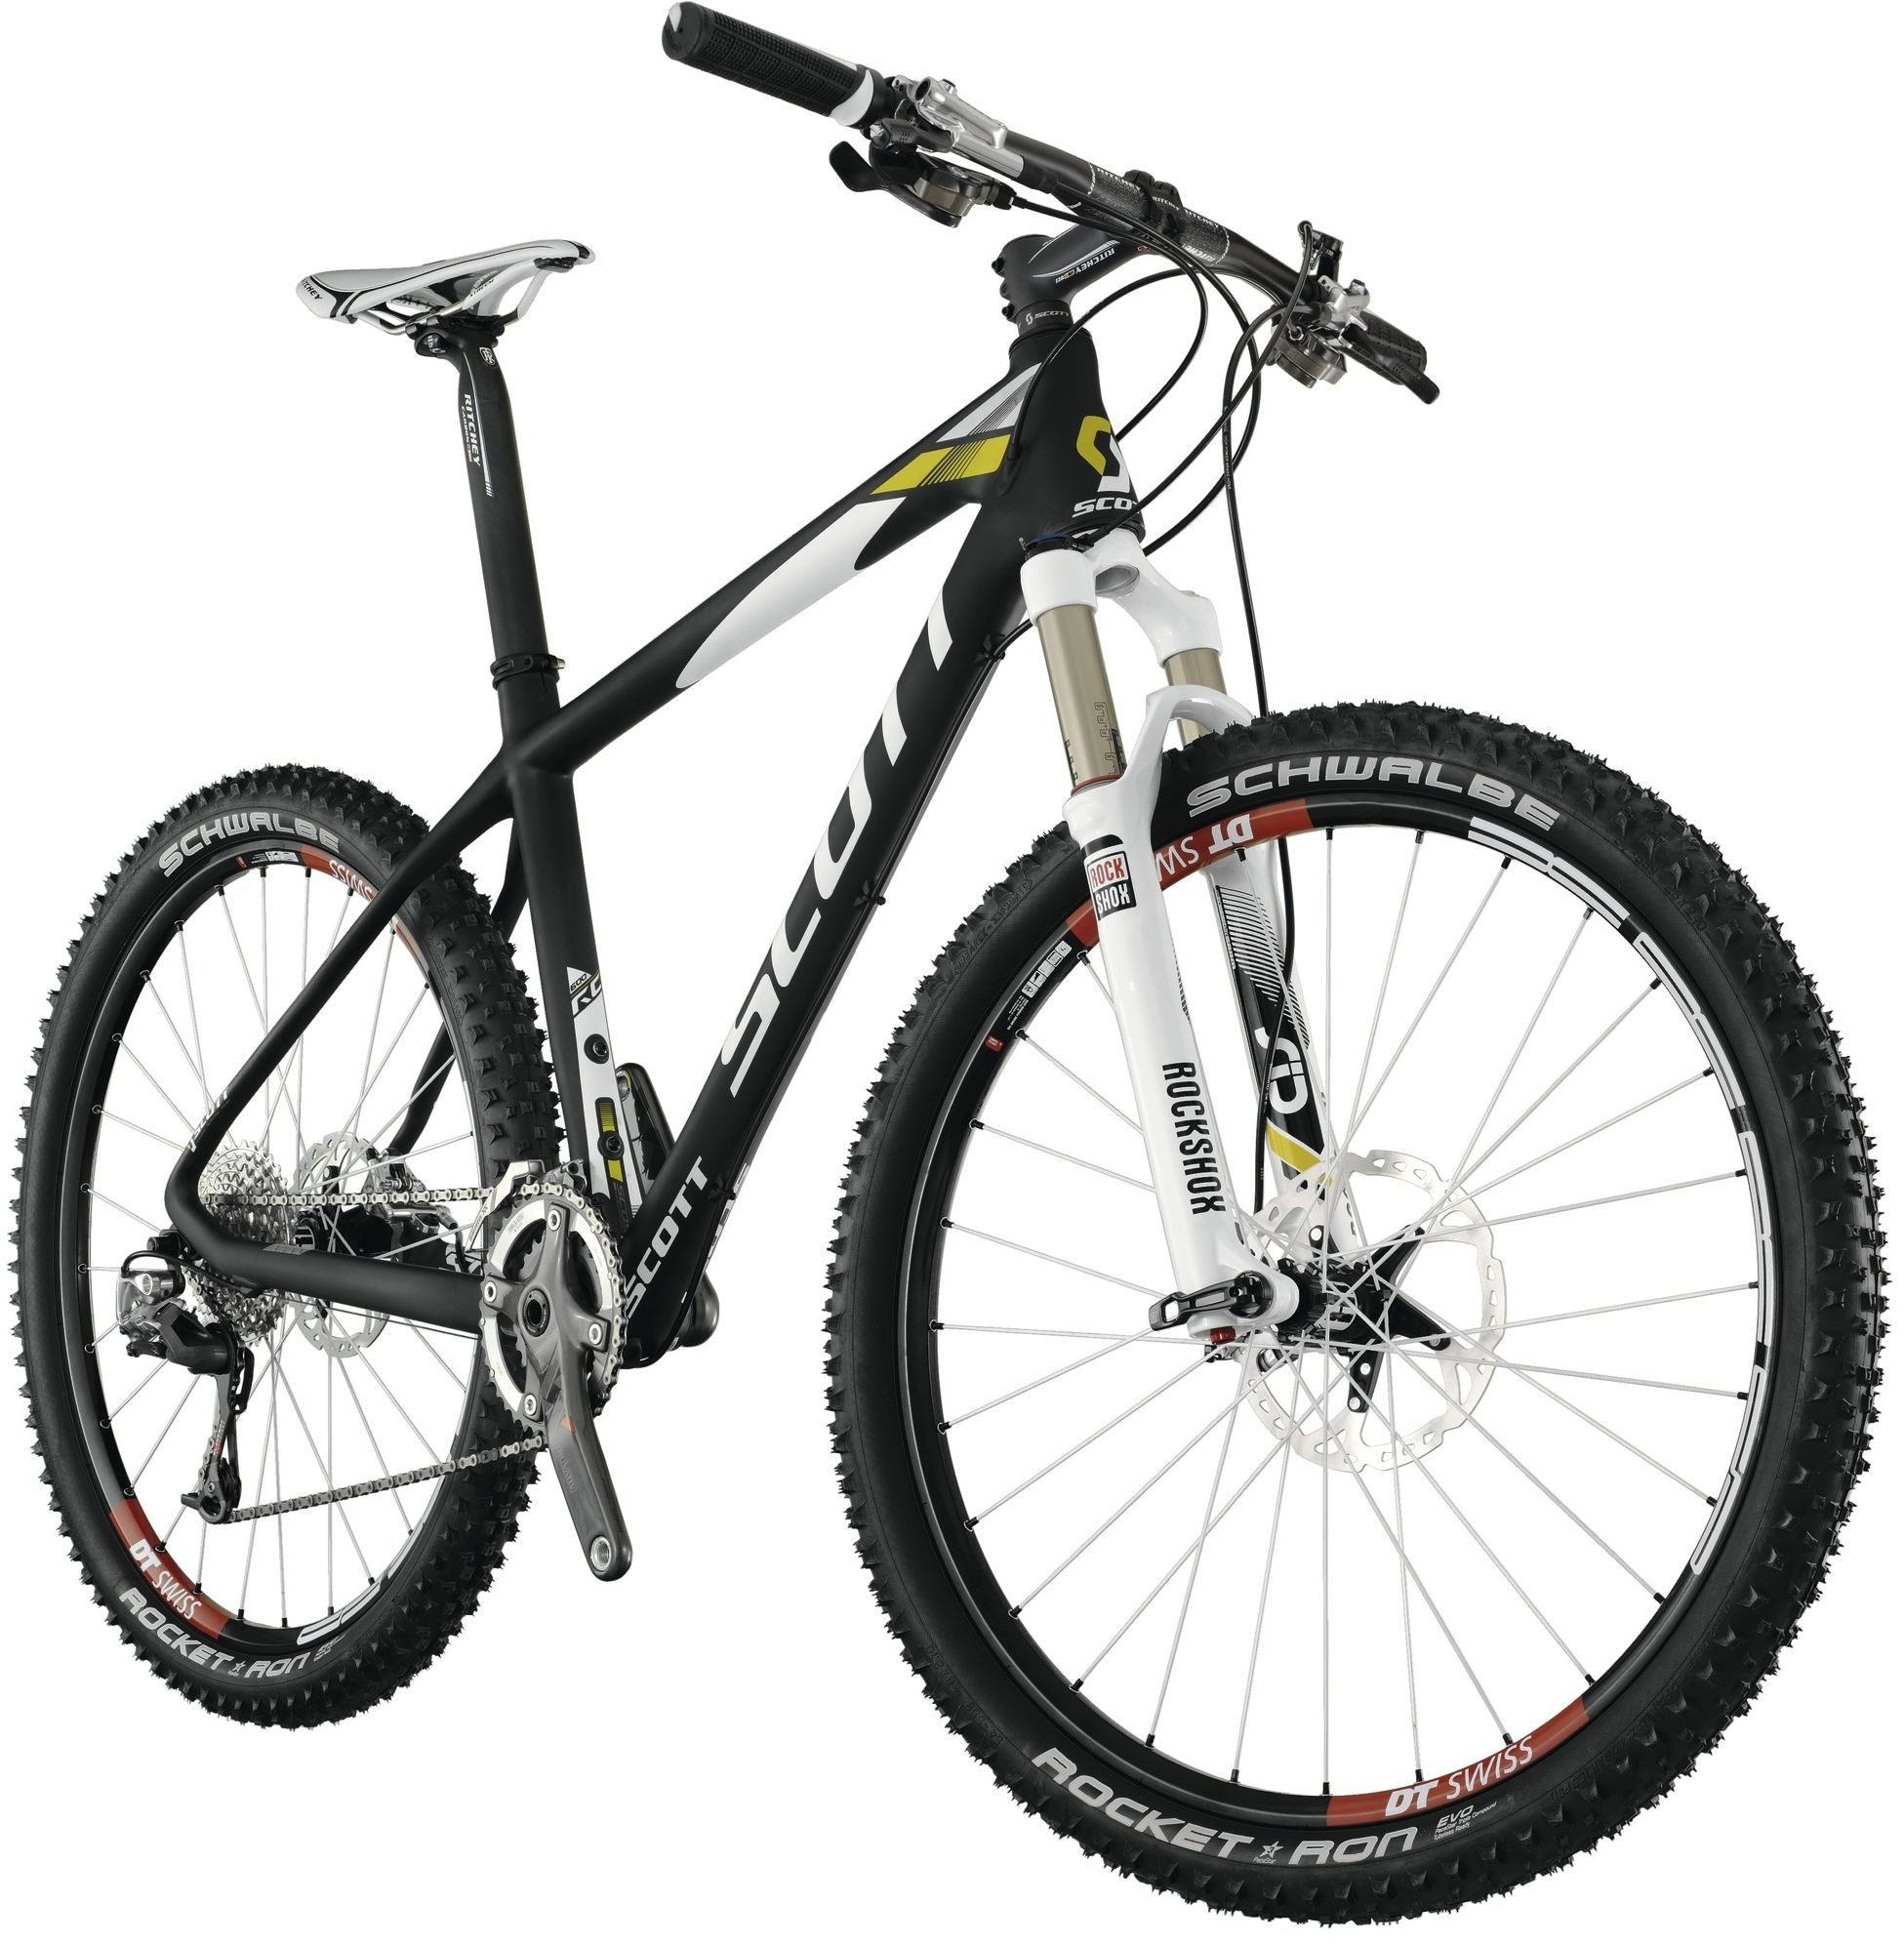 Scott Scale 600 Rc 2013 Review The Bike List